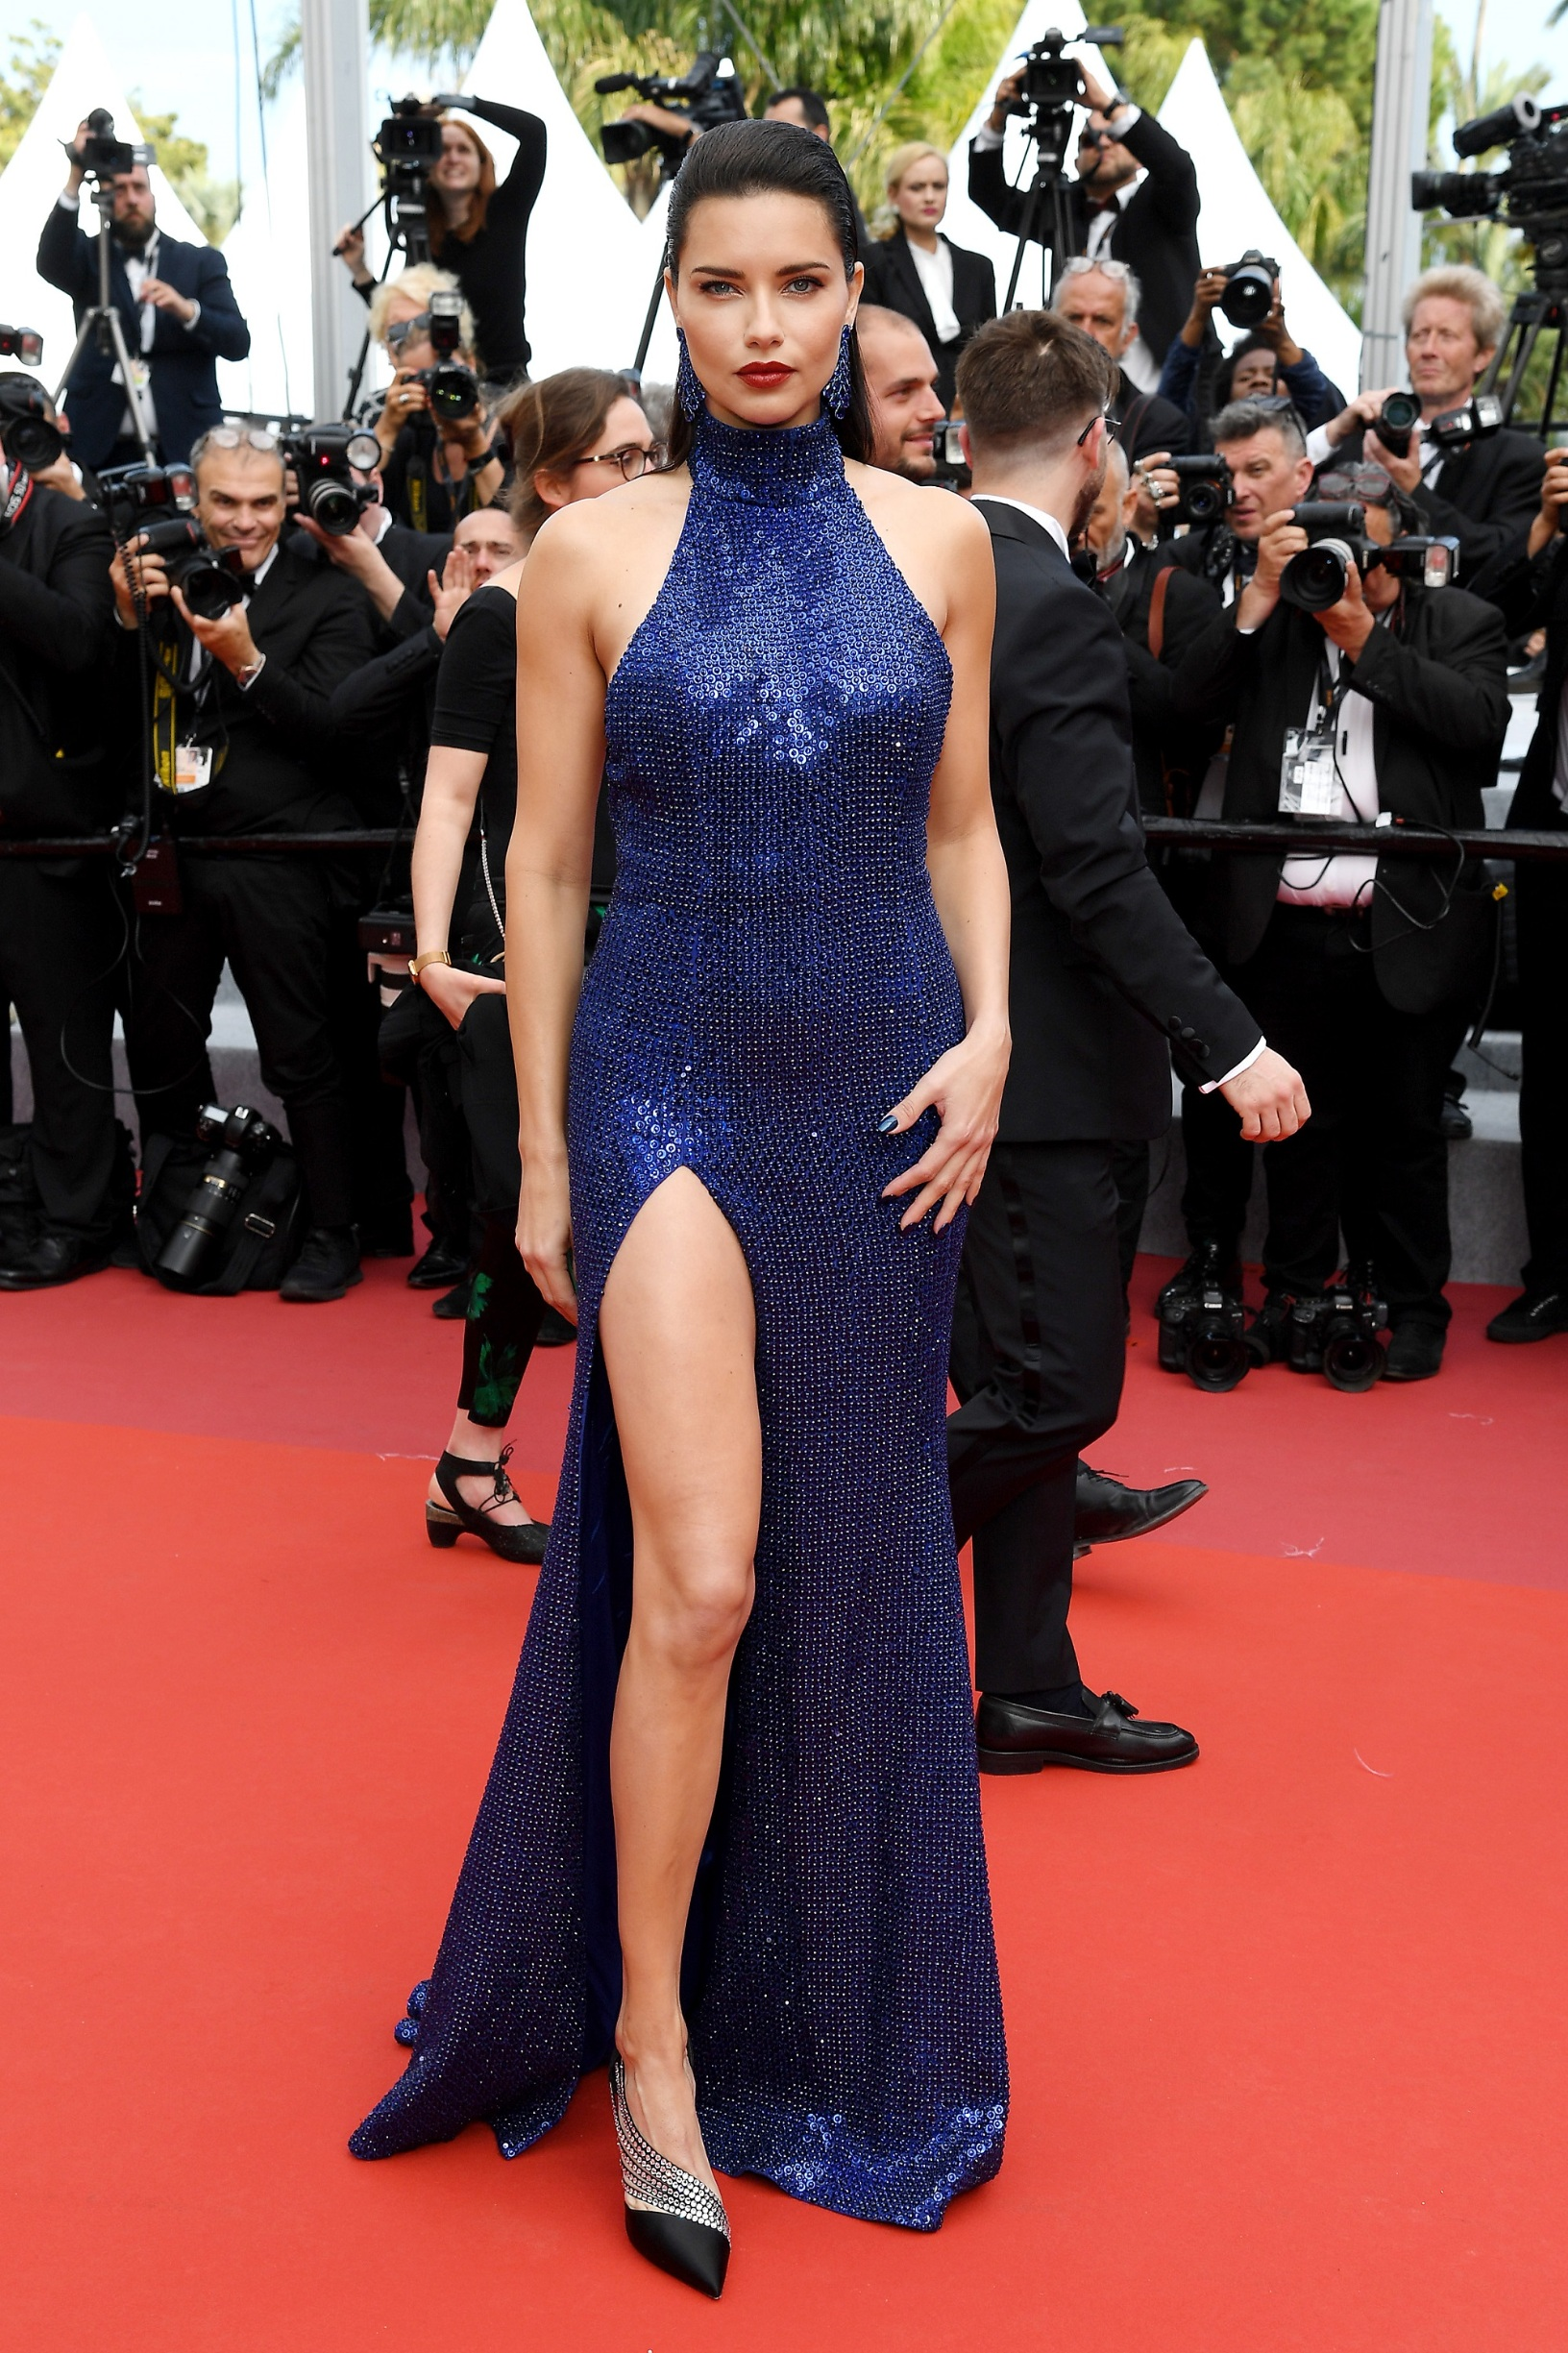 CANNES, FRANCE - MAY 22: Adriana Lima attends the screening of